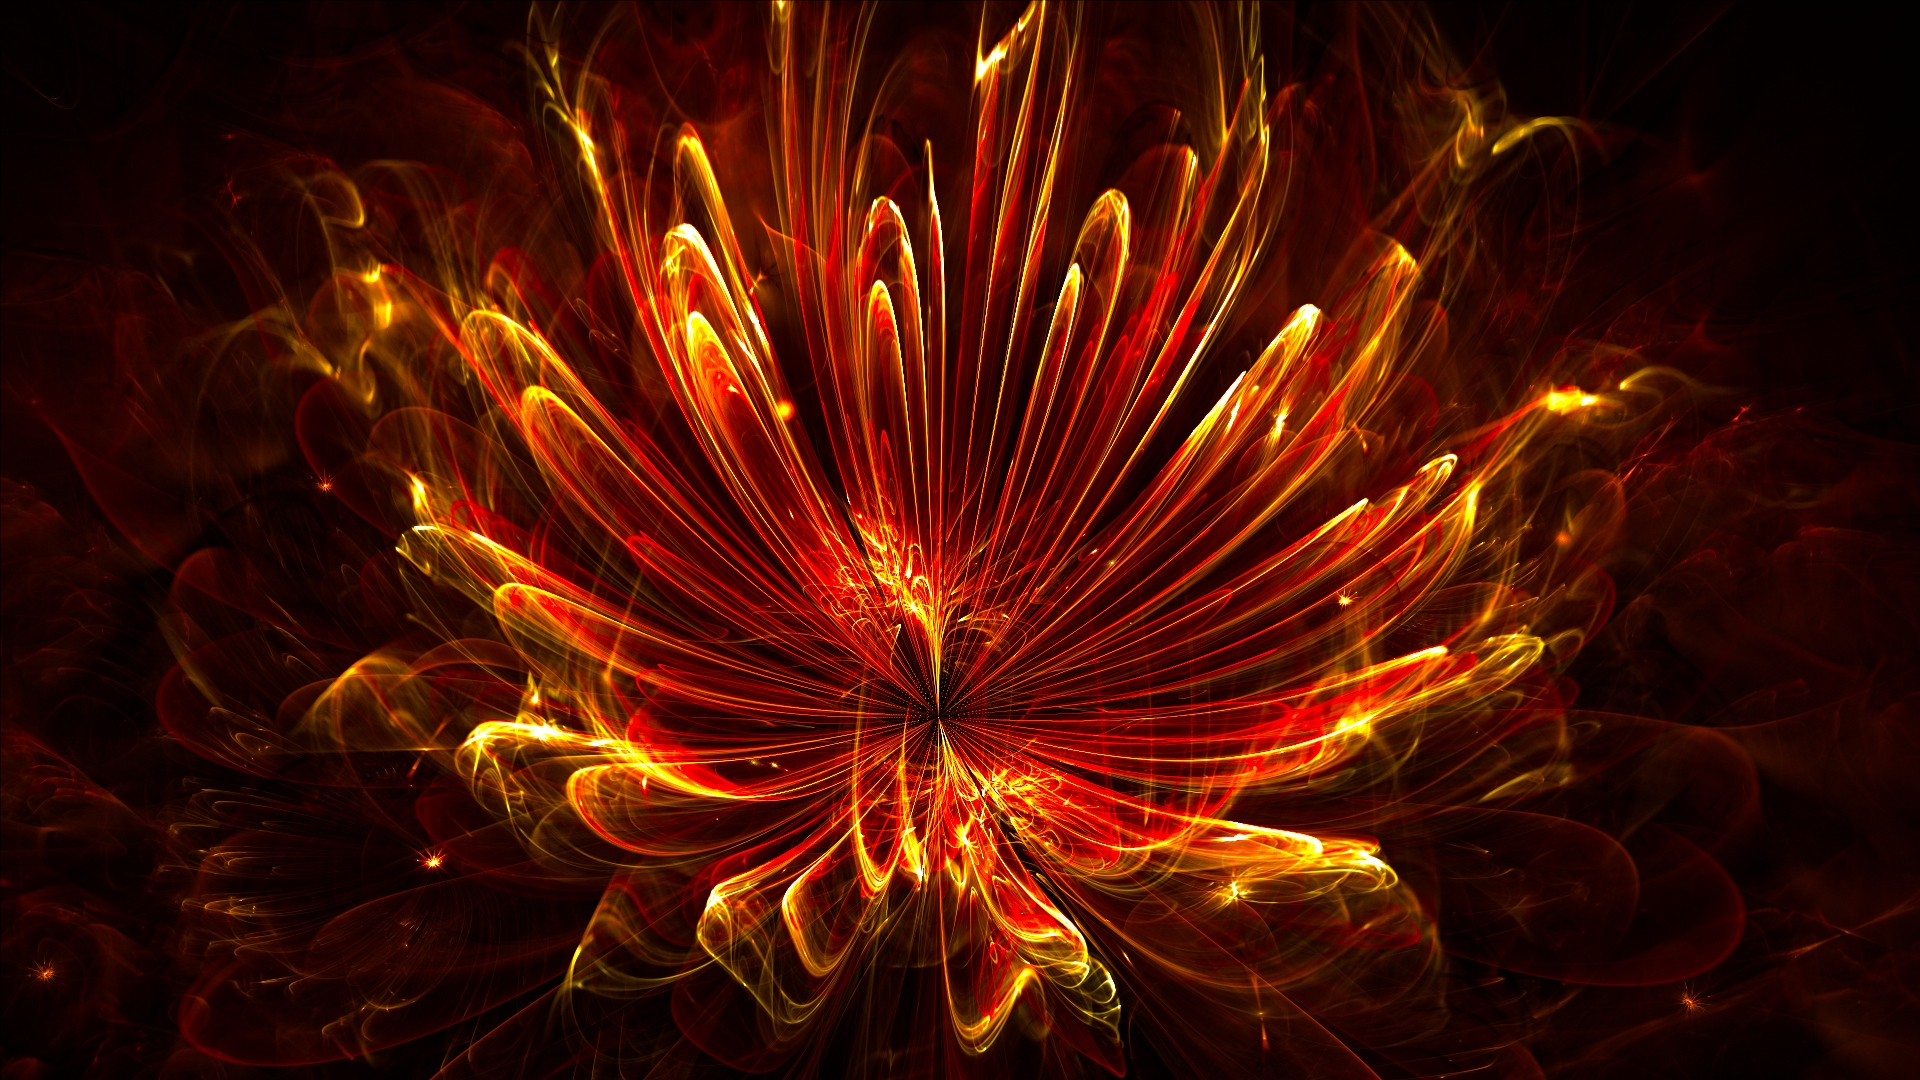 Fiery flower - HDR render by thargor6